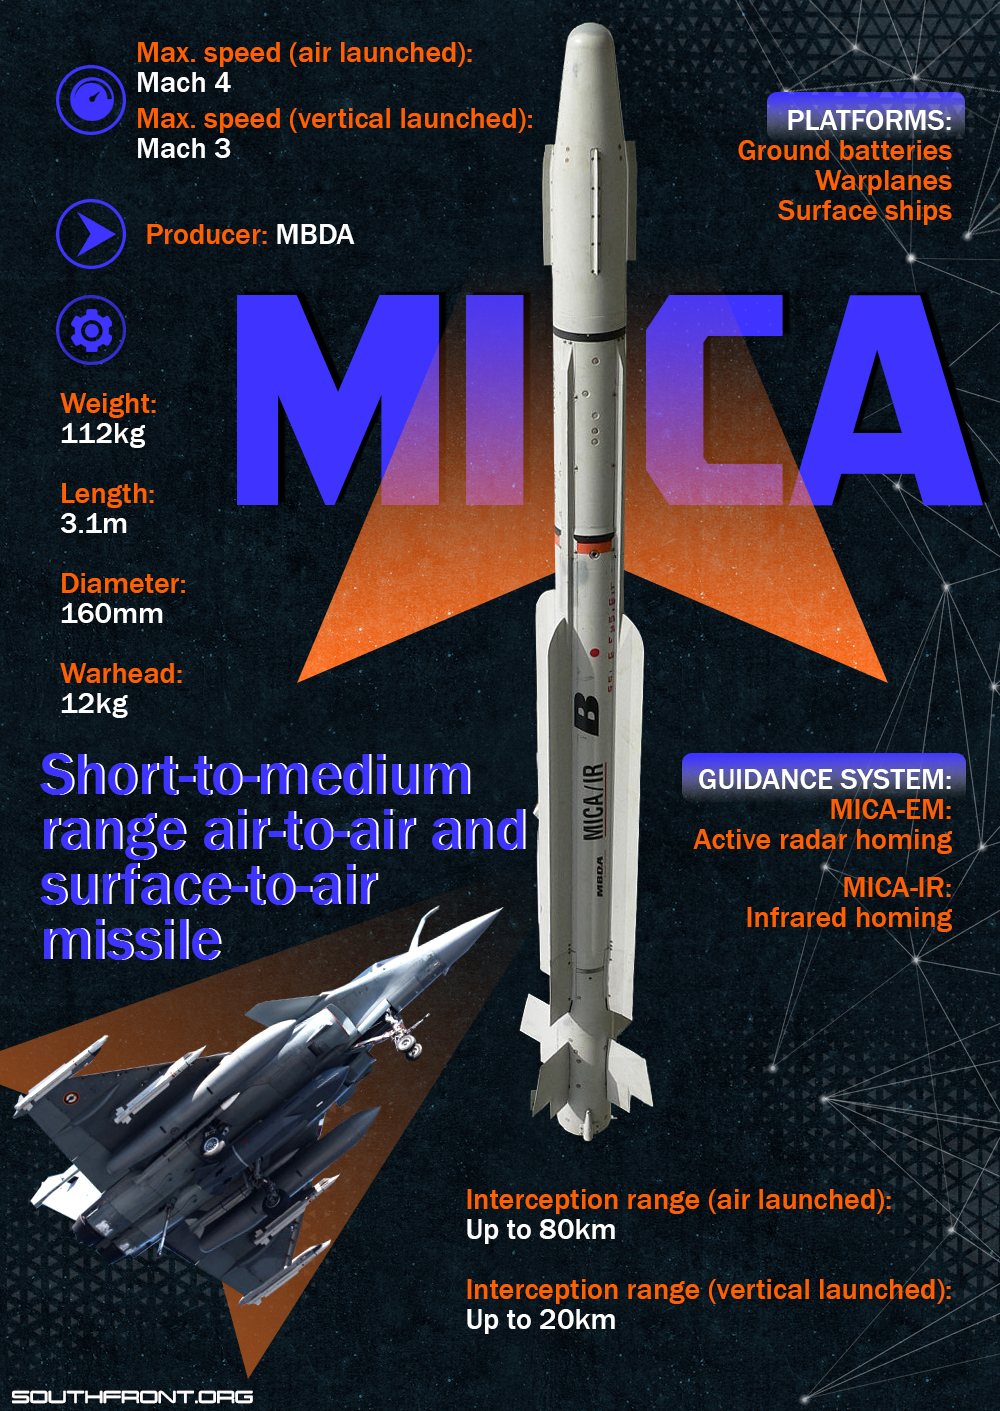 MICA Short-To-Medium Range Air-To-Air And Surface-To-Air Missile (Infographics)